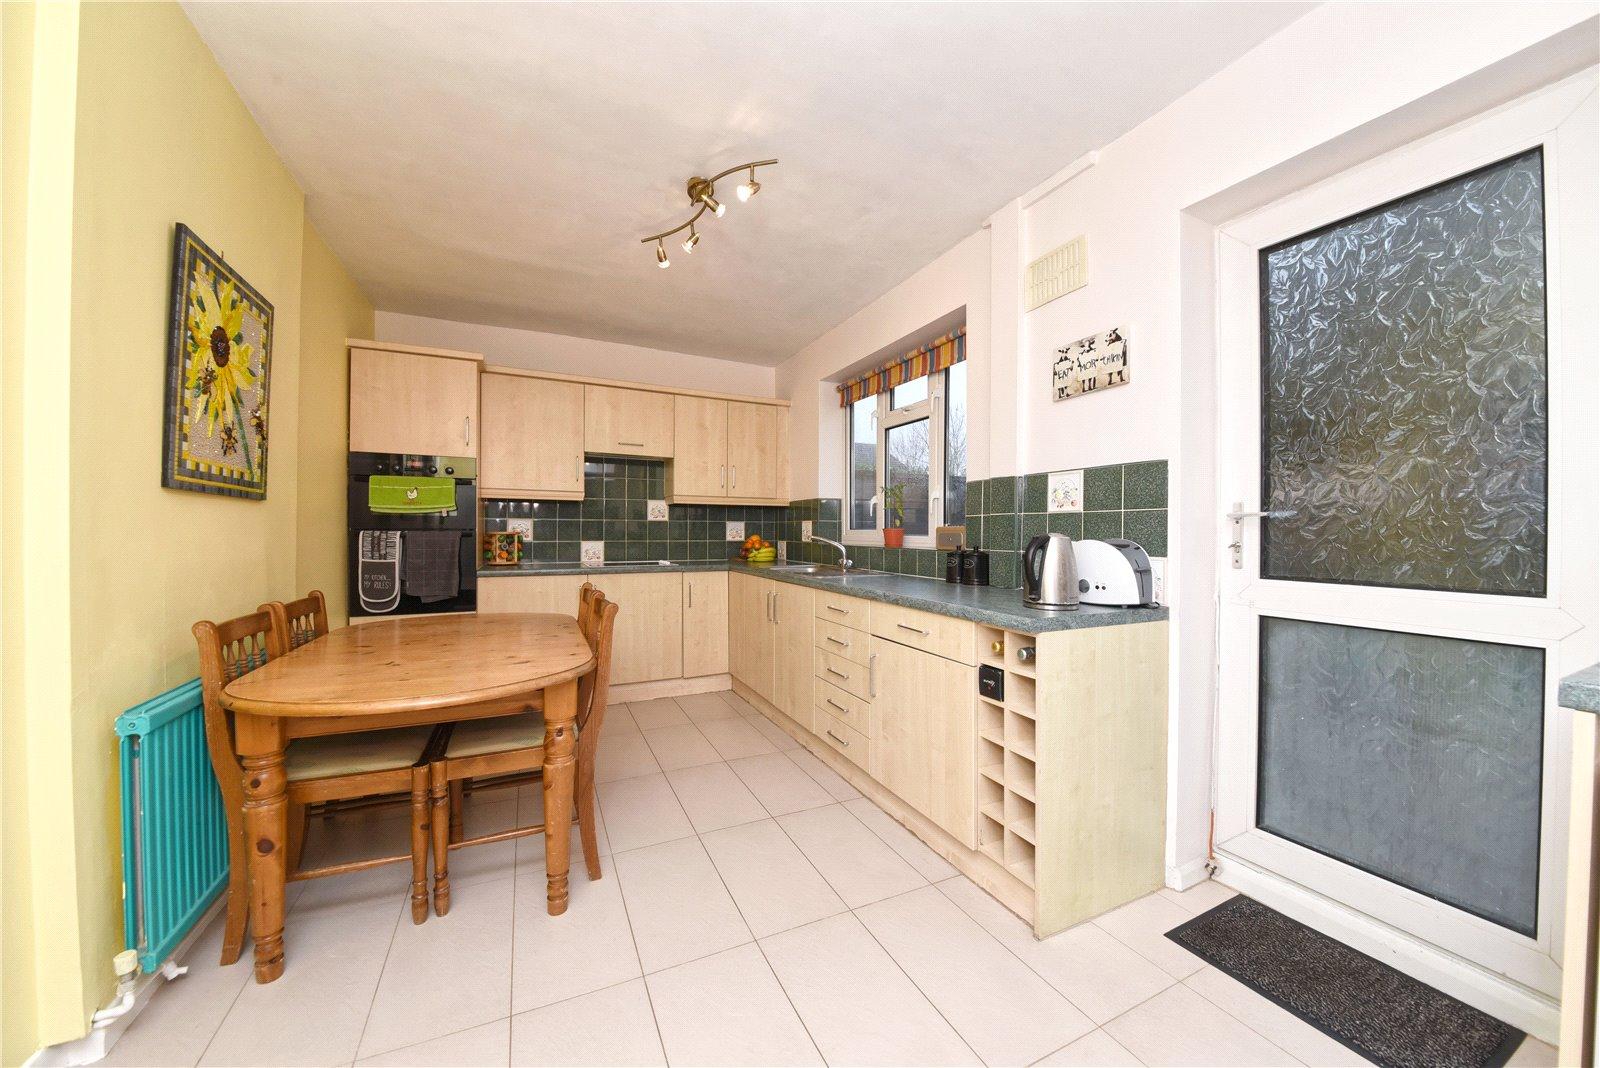 3 bed house for sale in Edgware, HA8 8XT  - Property Image 2